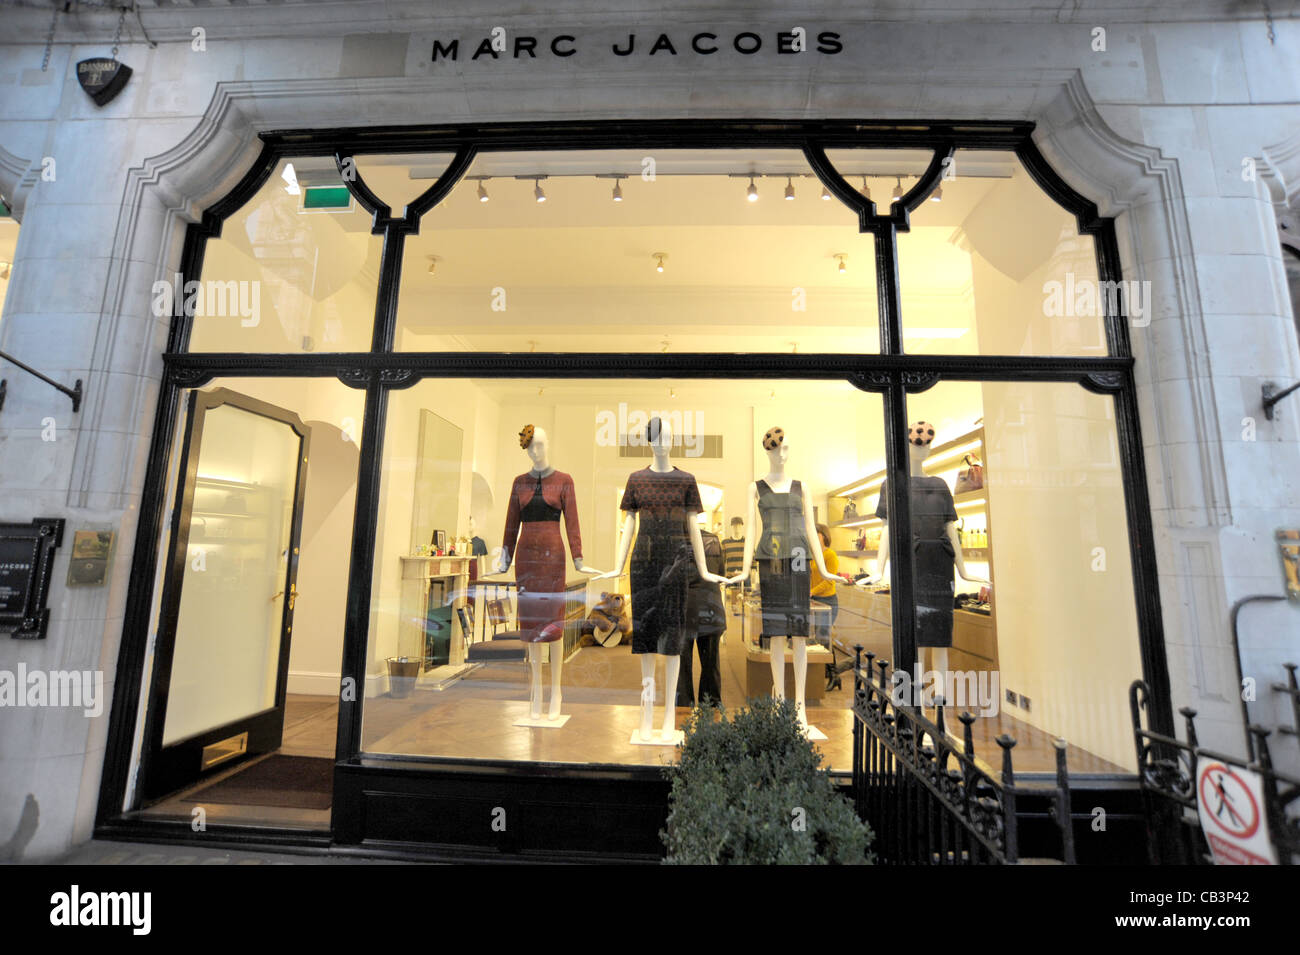 365e6f00a9720 Exterior shot of the Marc Jacobs store on Mount Street London England 2011  - Image Copyright